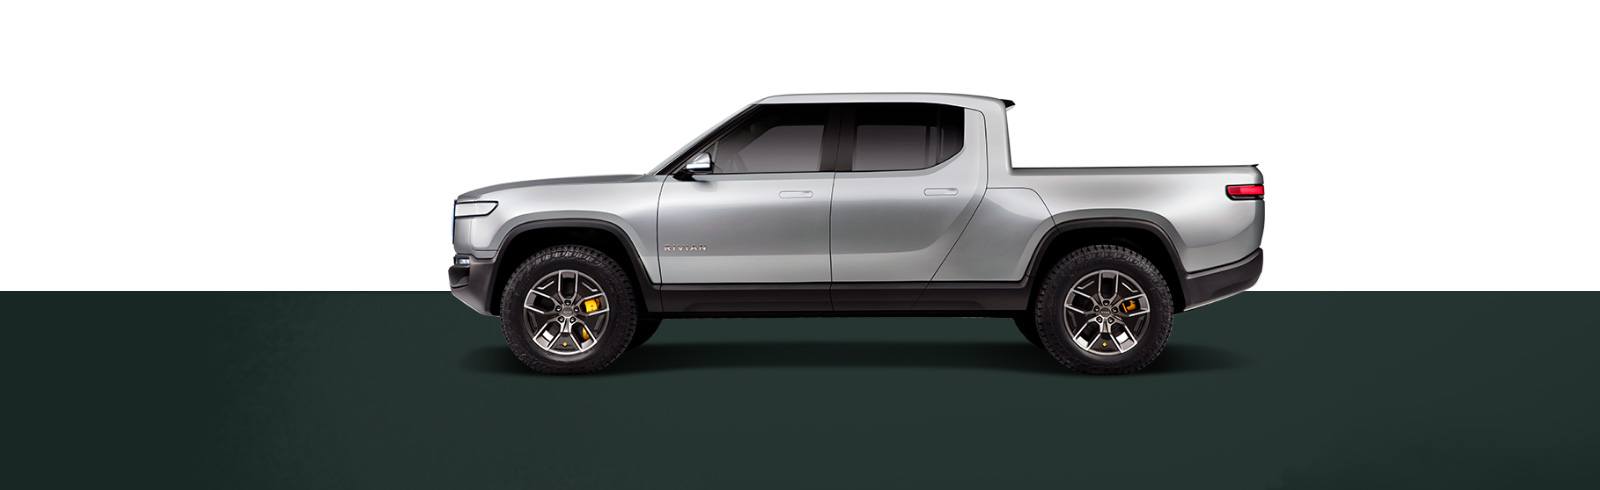 Rivian and GM talks about a possible investment break down